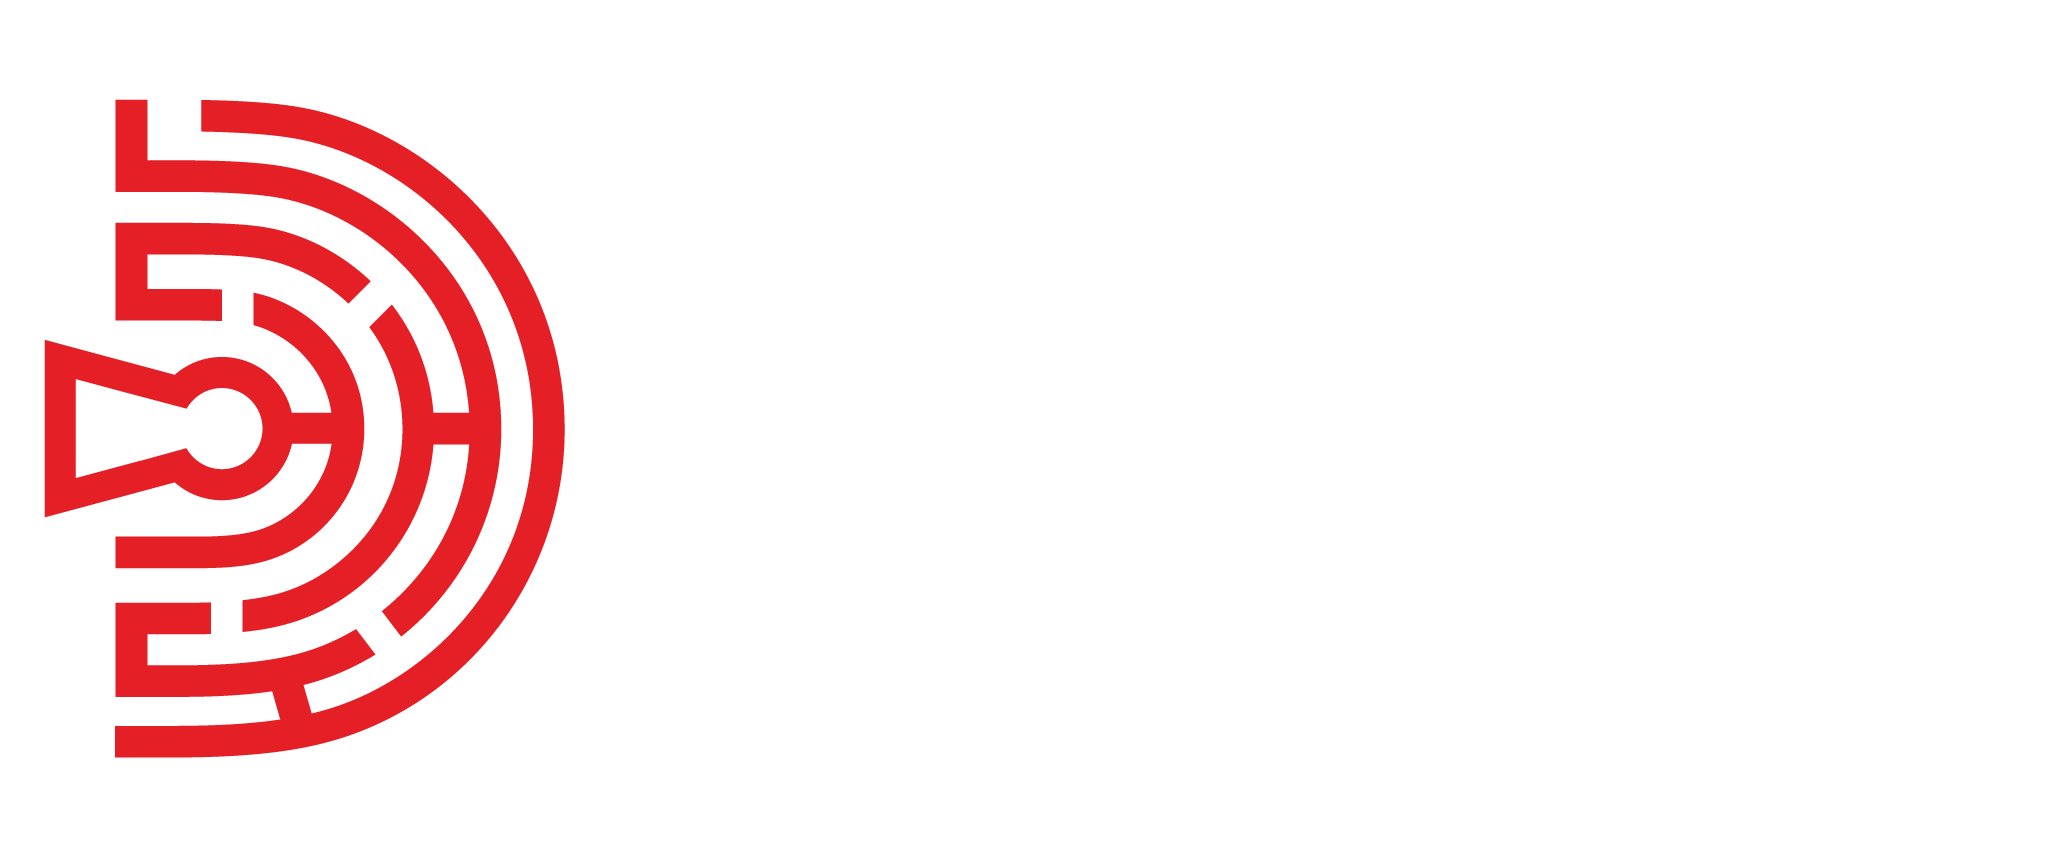 Dynamic Escape Rooms